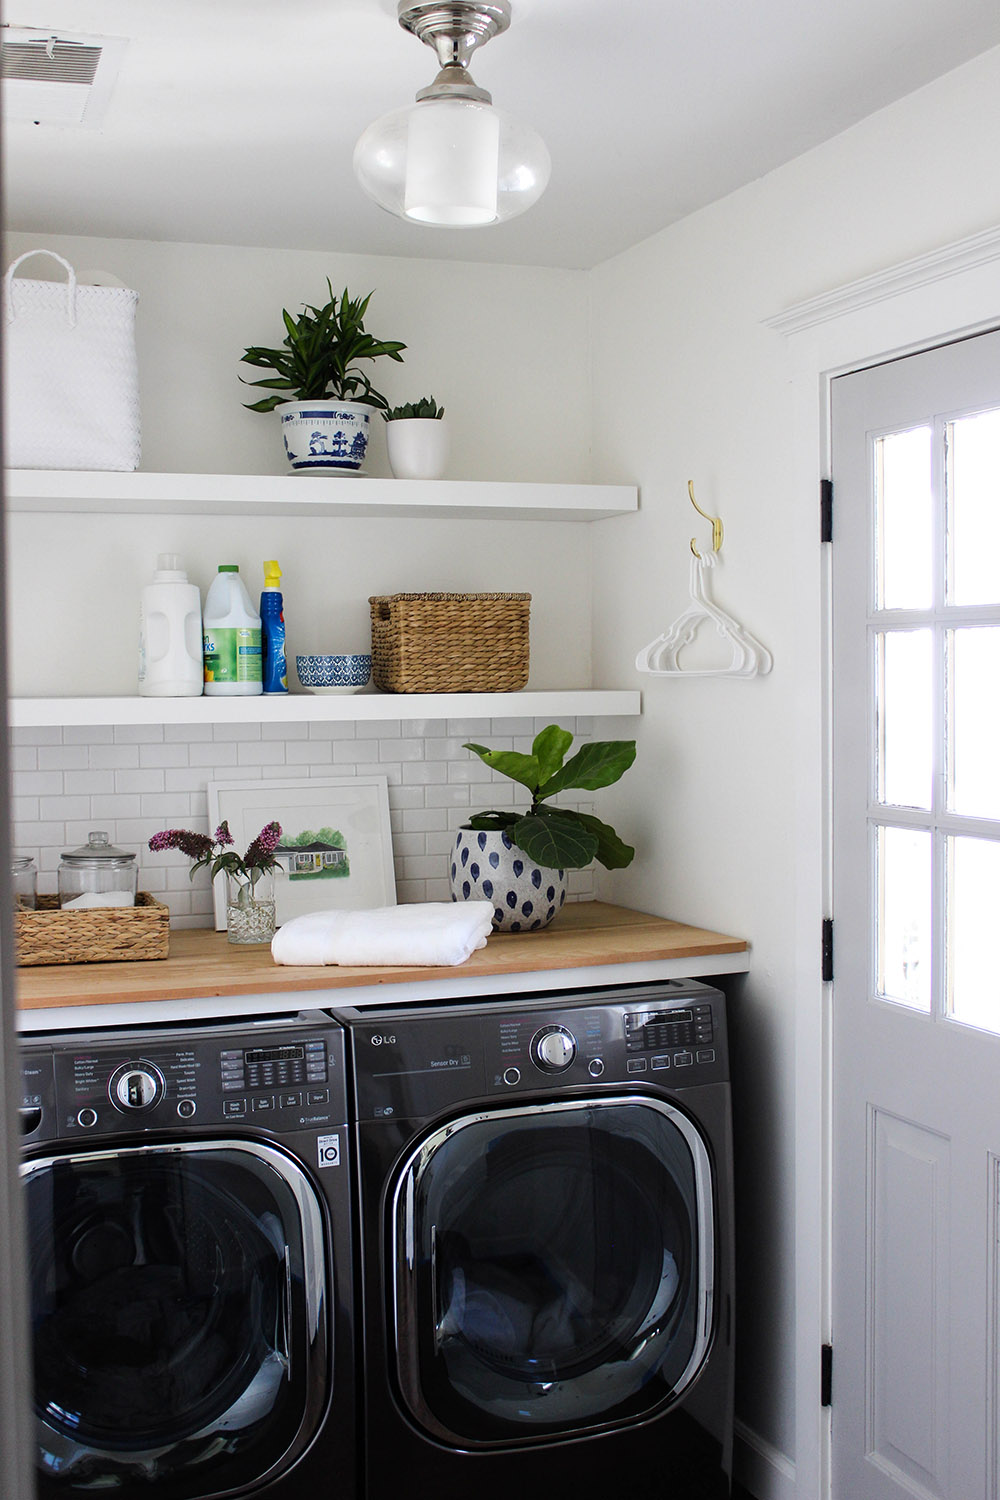 A completed laundry room refresh with new LG front load laundry appliances.